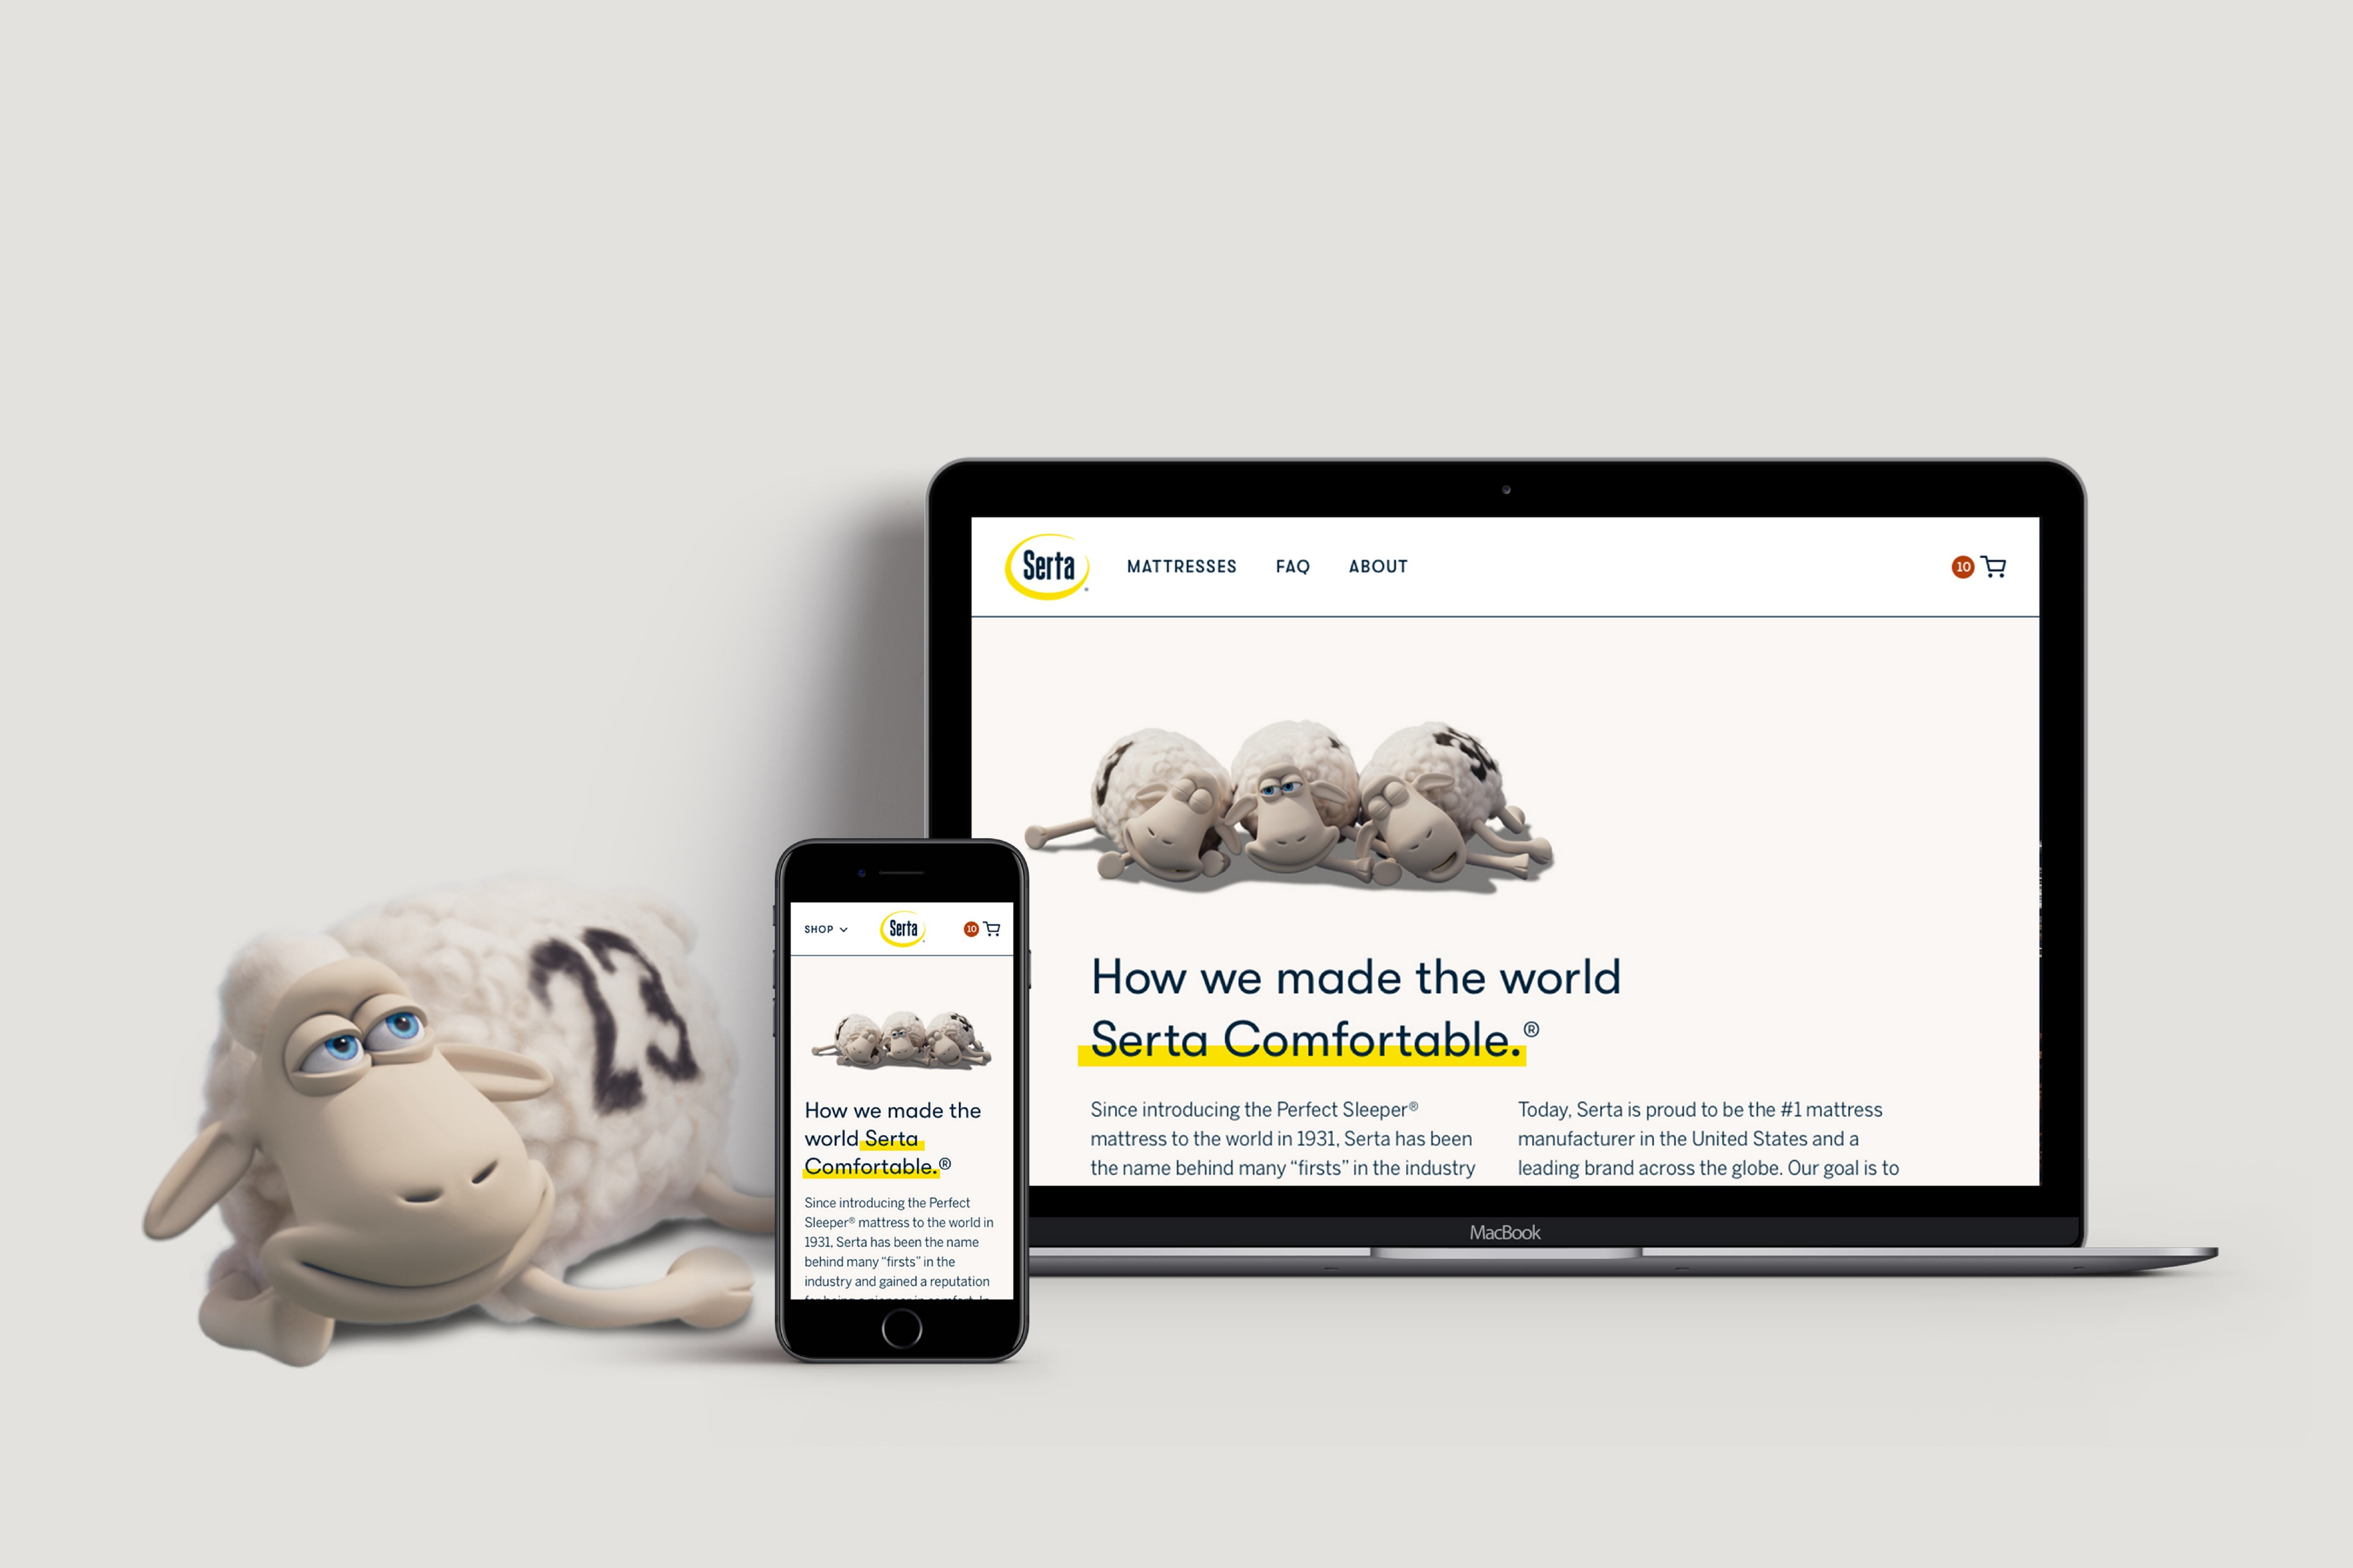 """Serta sheep number 23 looks at an iPhone and MacBook with a webpage that reads """"How we made the world Serta Comfortable."""""""